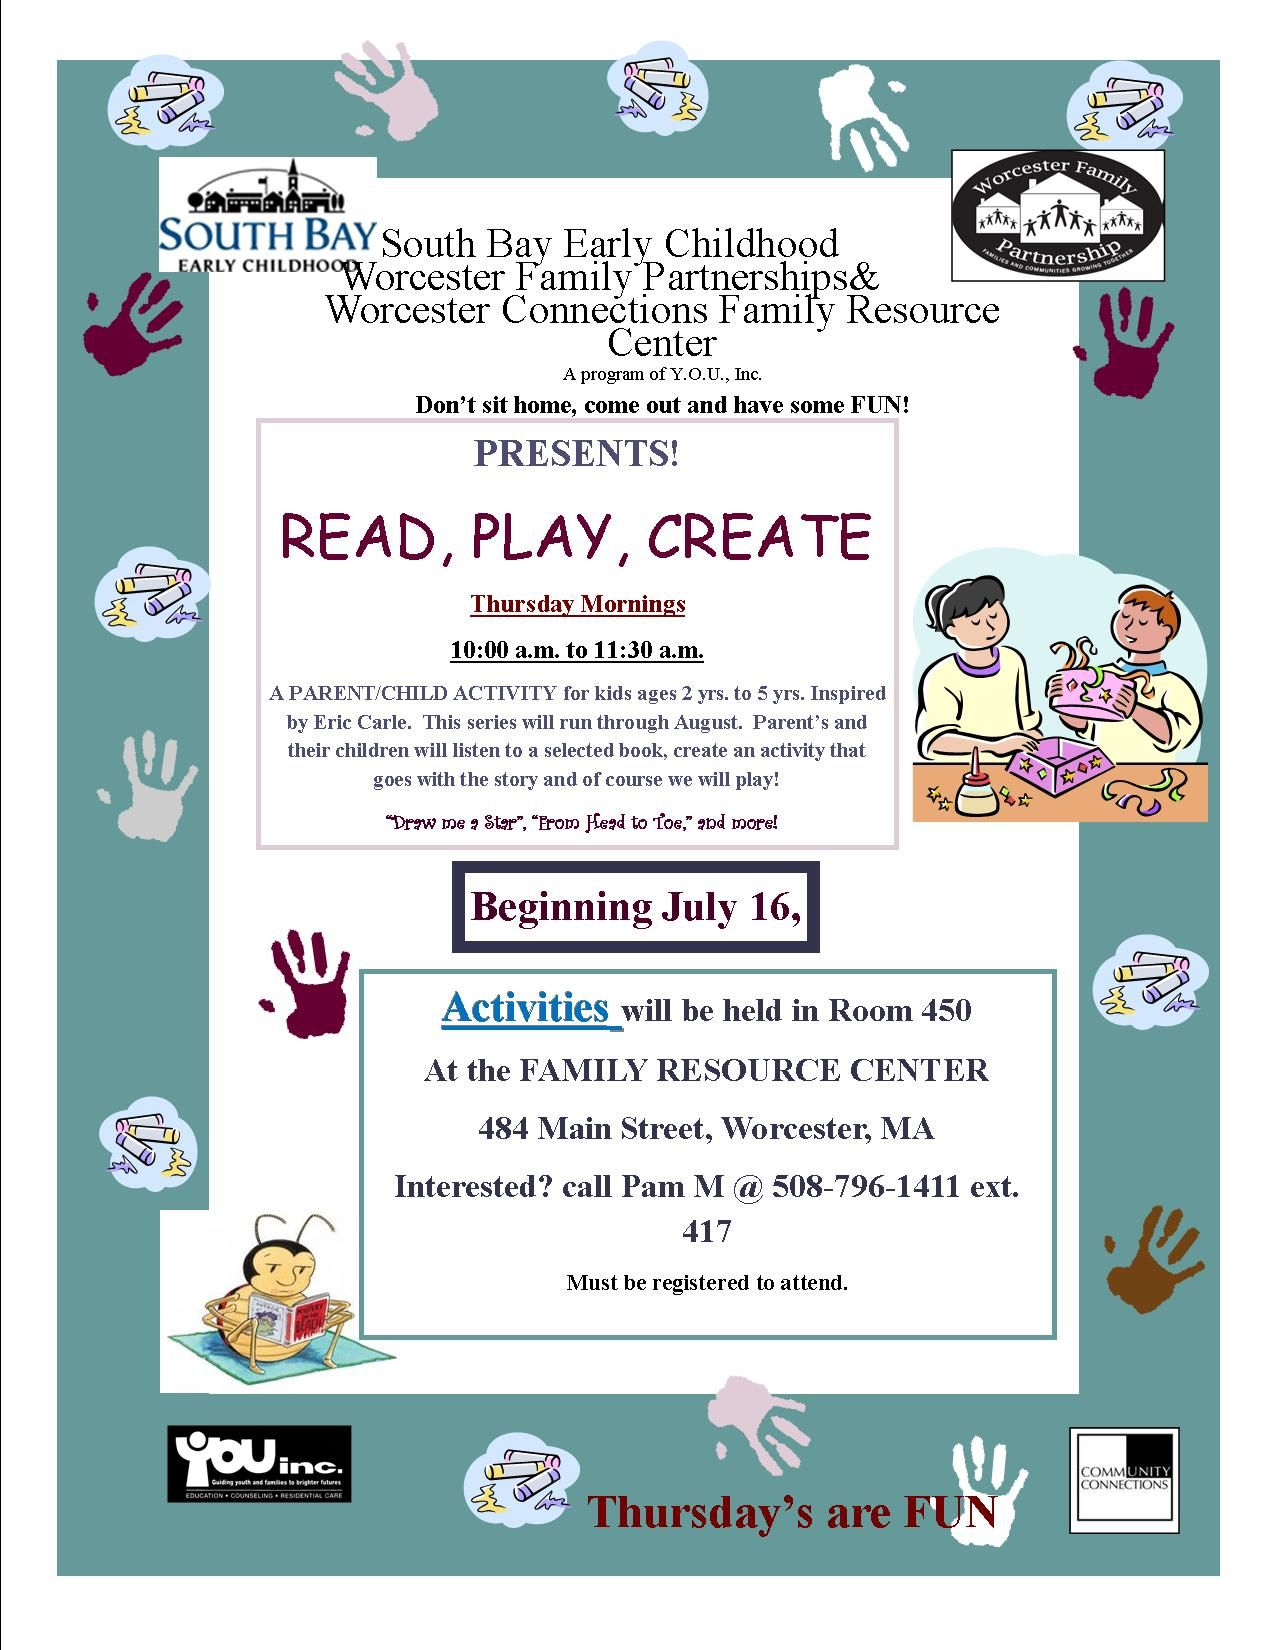 READ PLAY CREATE This Thursday! at the WCFRC of YOU, Inc